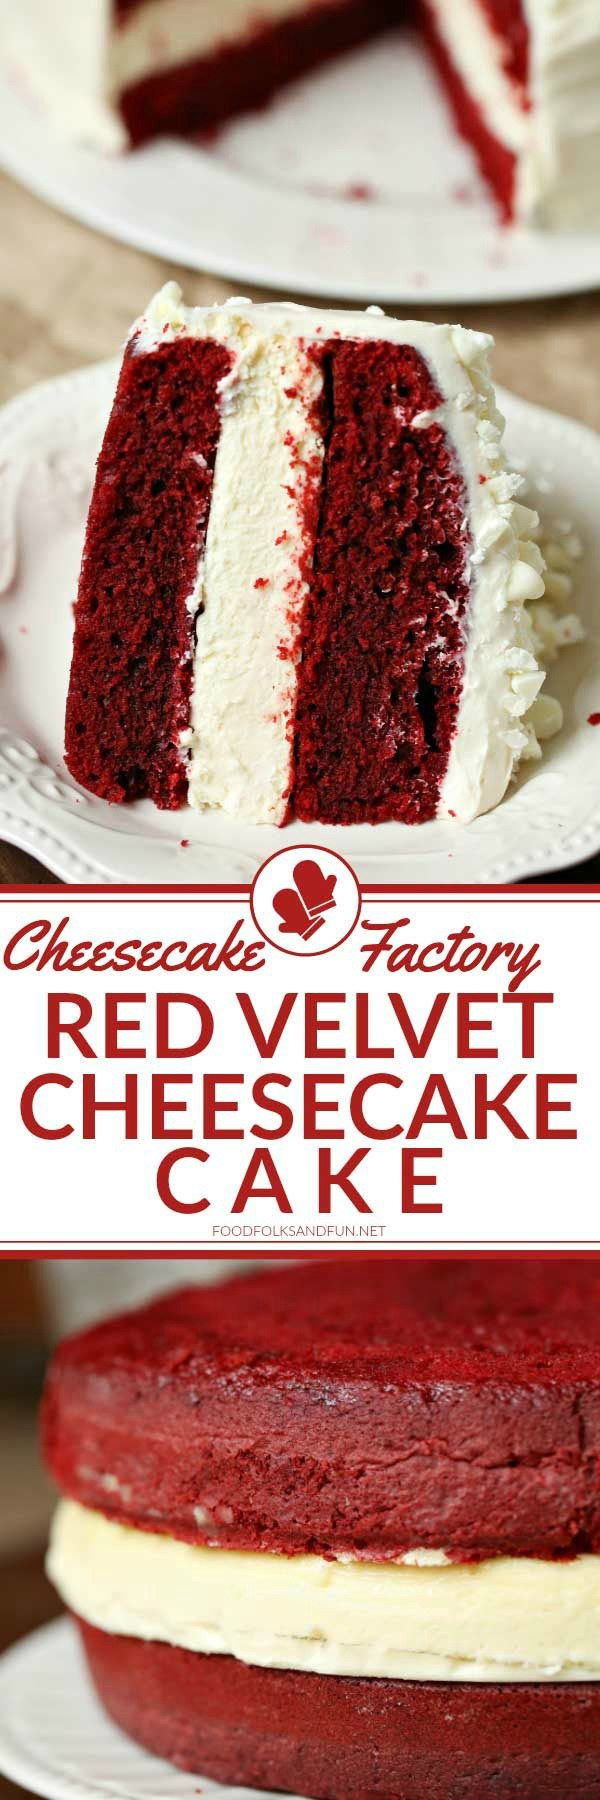 2 layers of red velvet cake with a layer of cheesecake in the center.